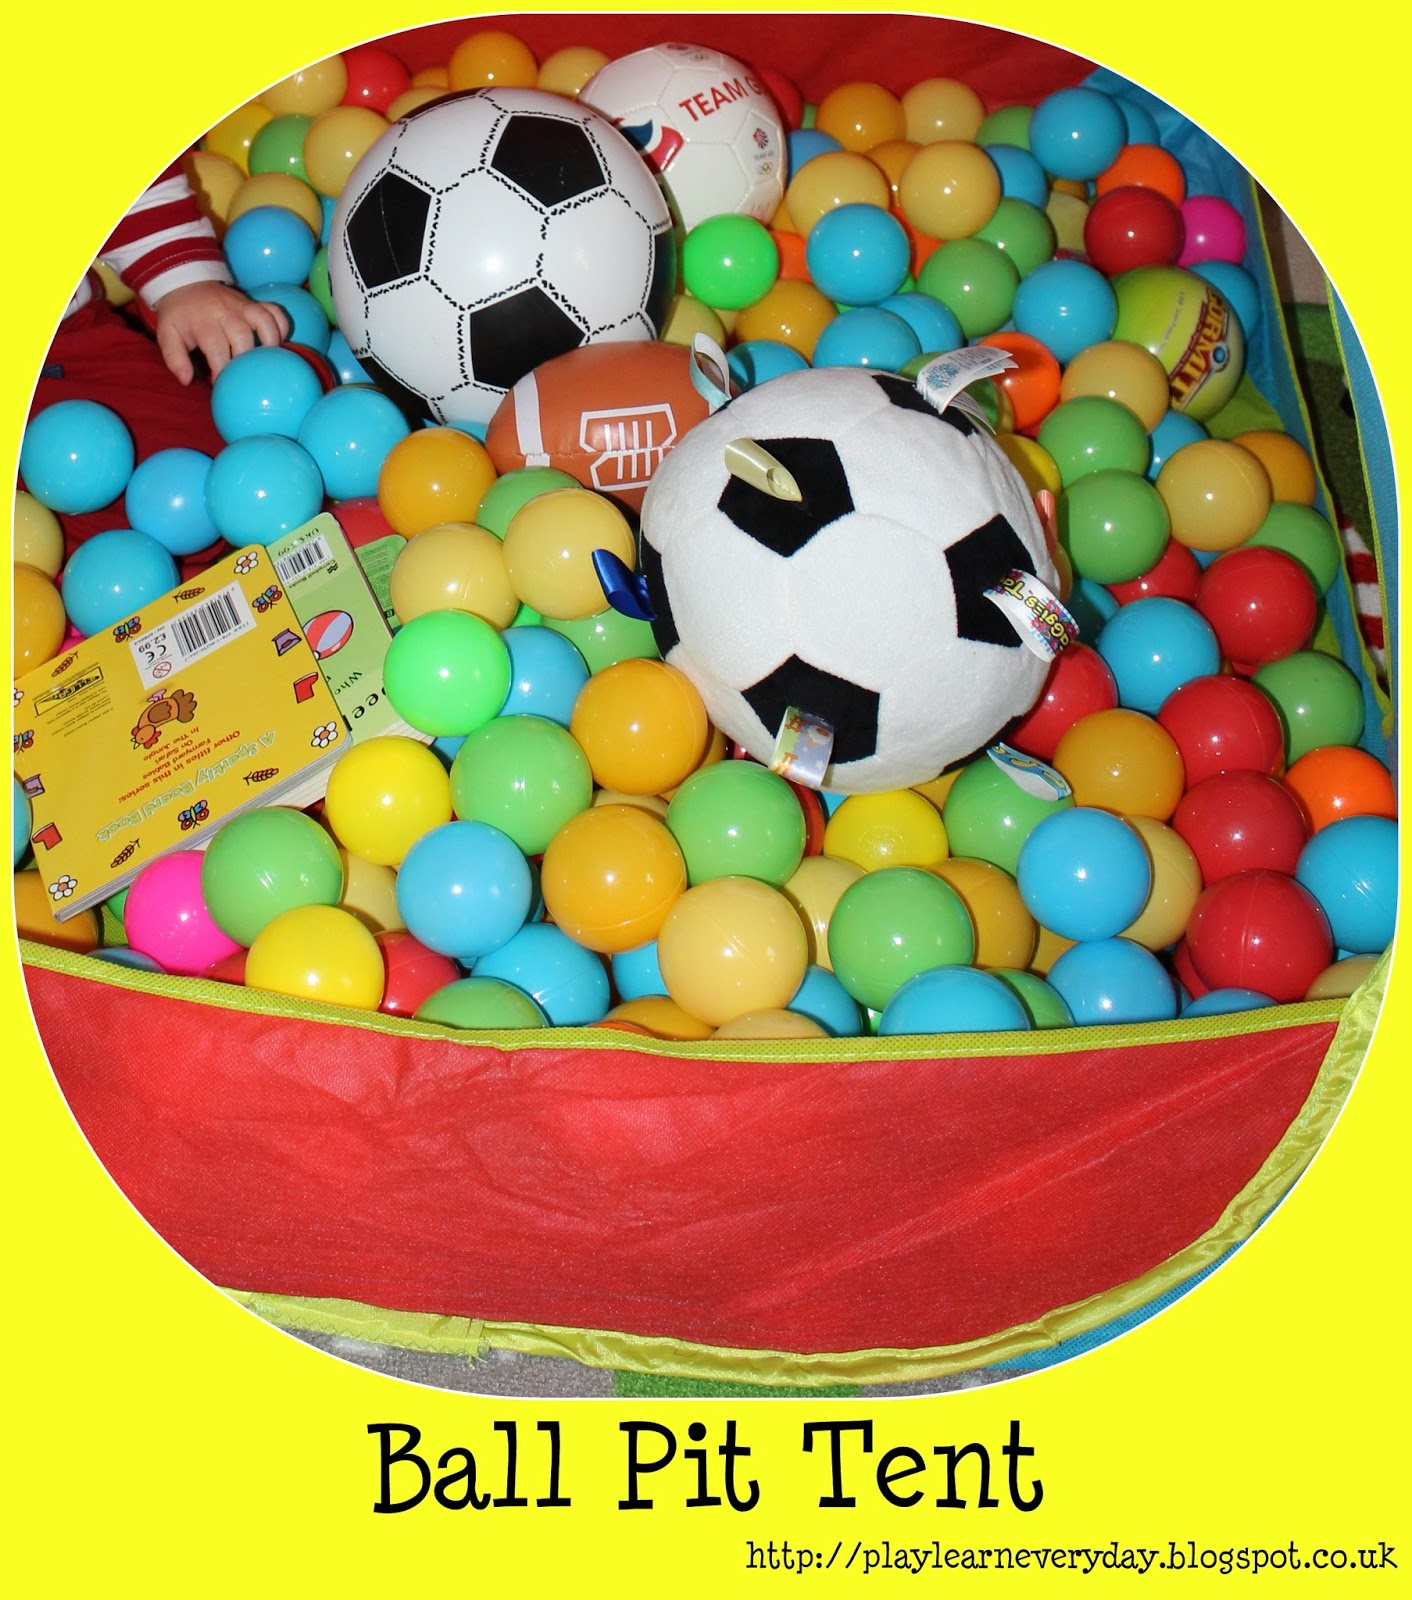 & Ball Pit Tent - Play and Learn Every Day